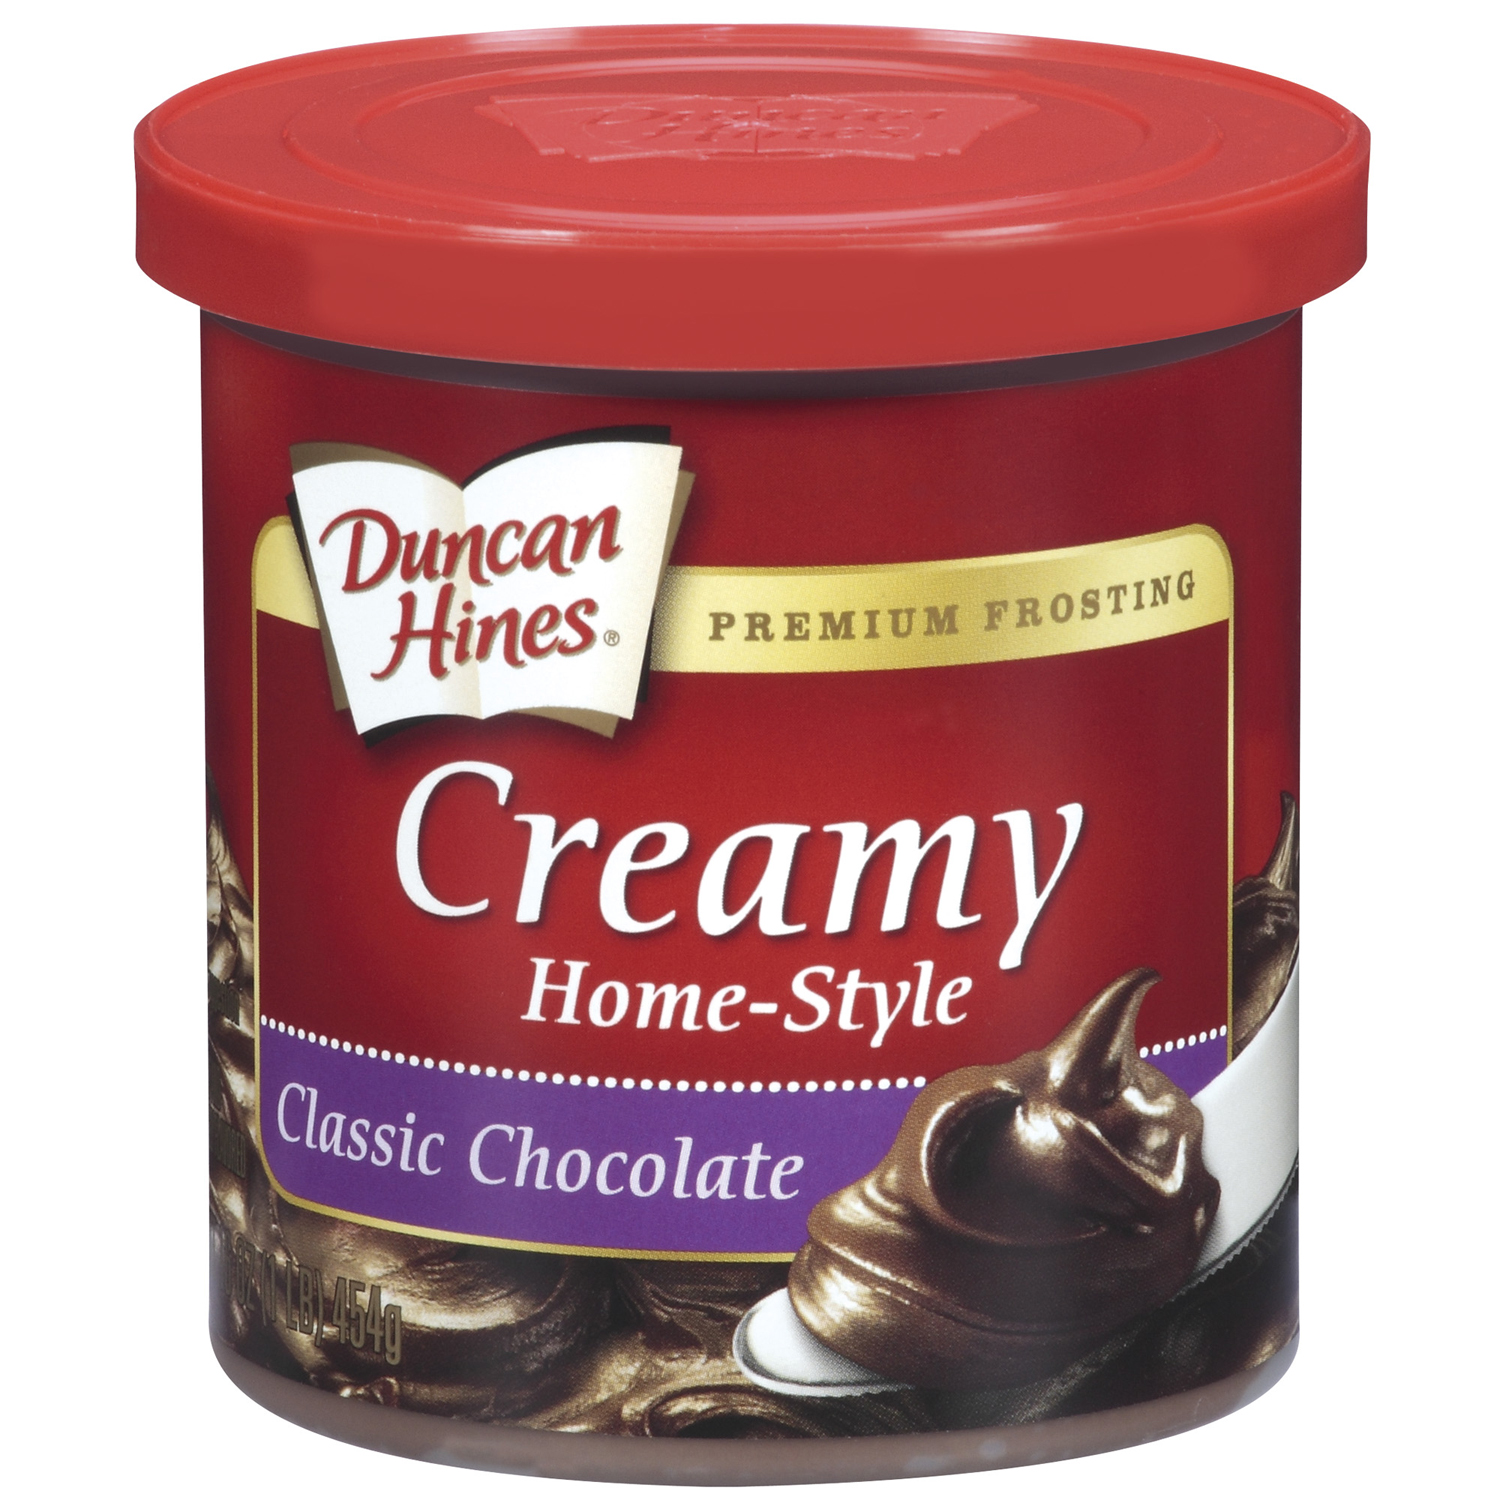 Duncan Hines Classic Chocolate Creamy Home-Style Frosting 16 Oz Can